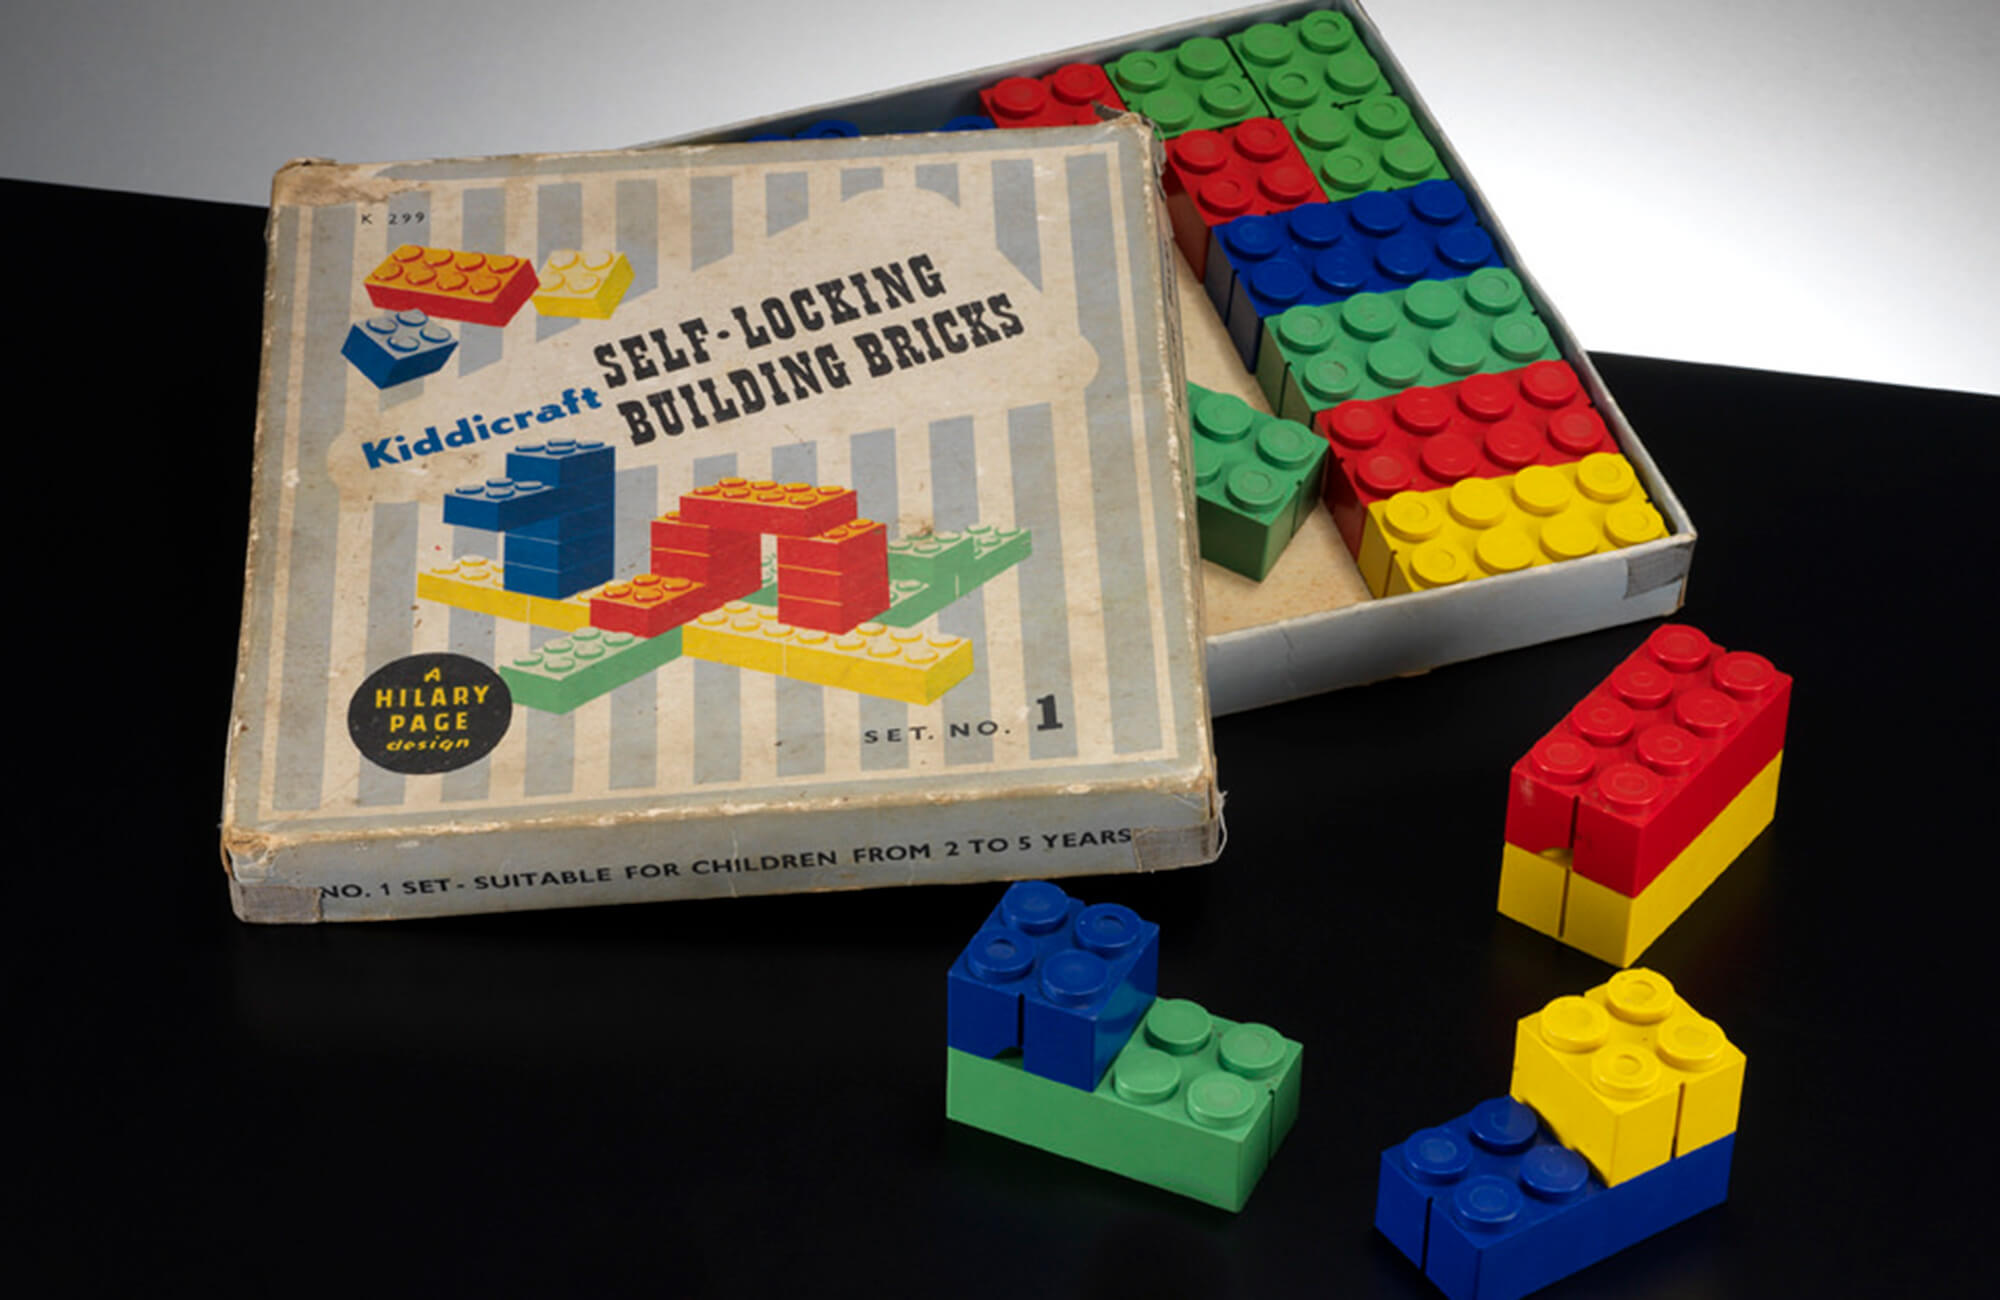 The Self-Locking Building Bricks Kiddicraft